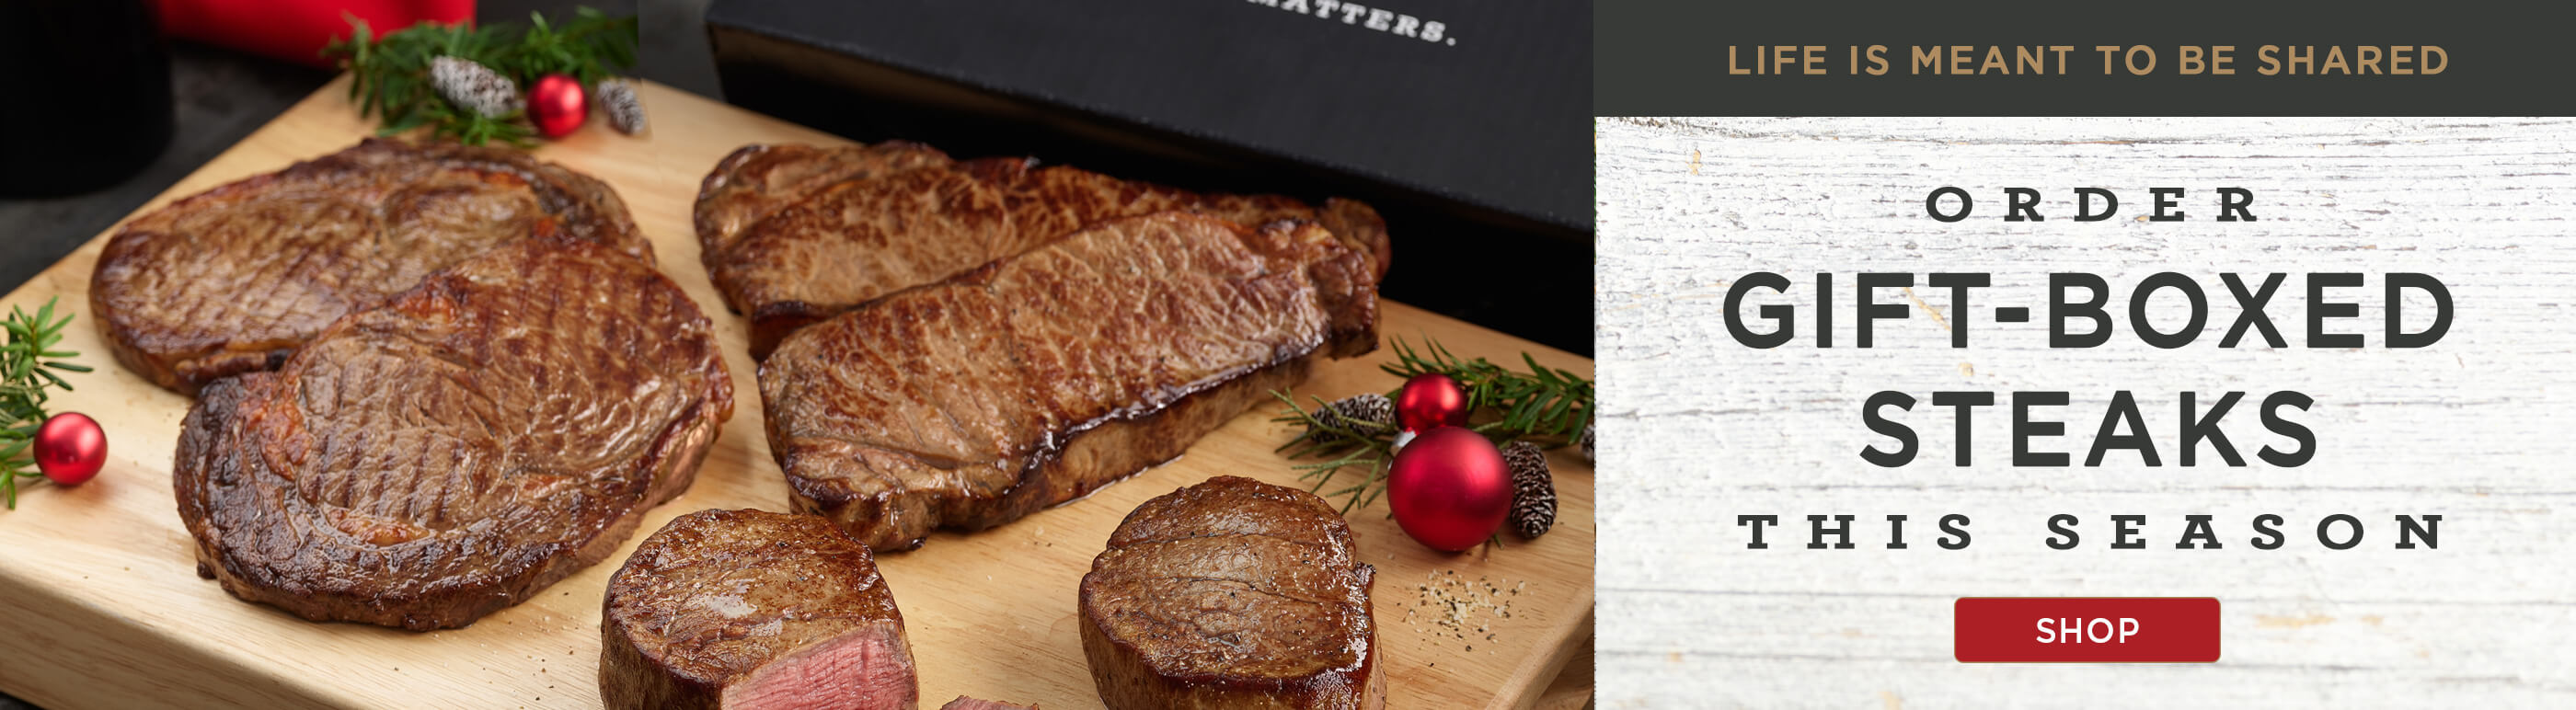 Life is meant to be shared. Order gift boxed steaks this season.